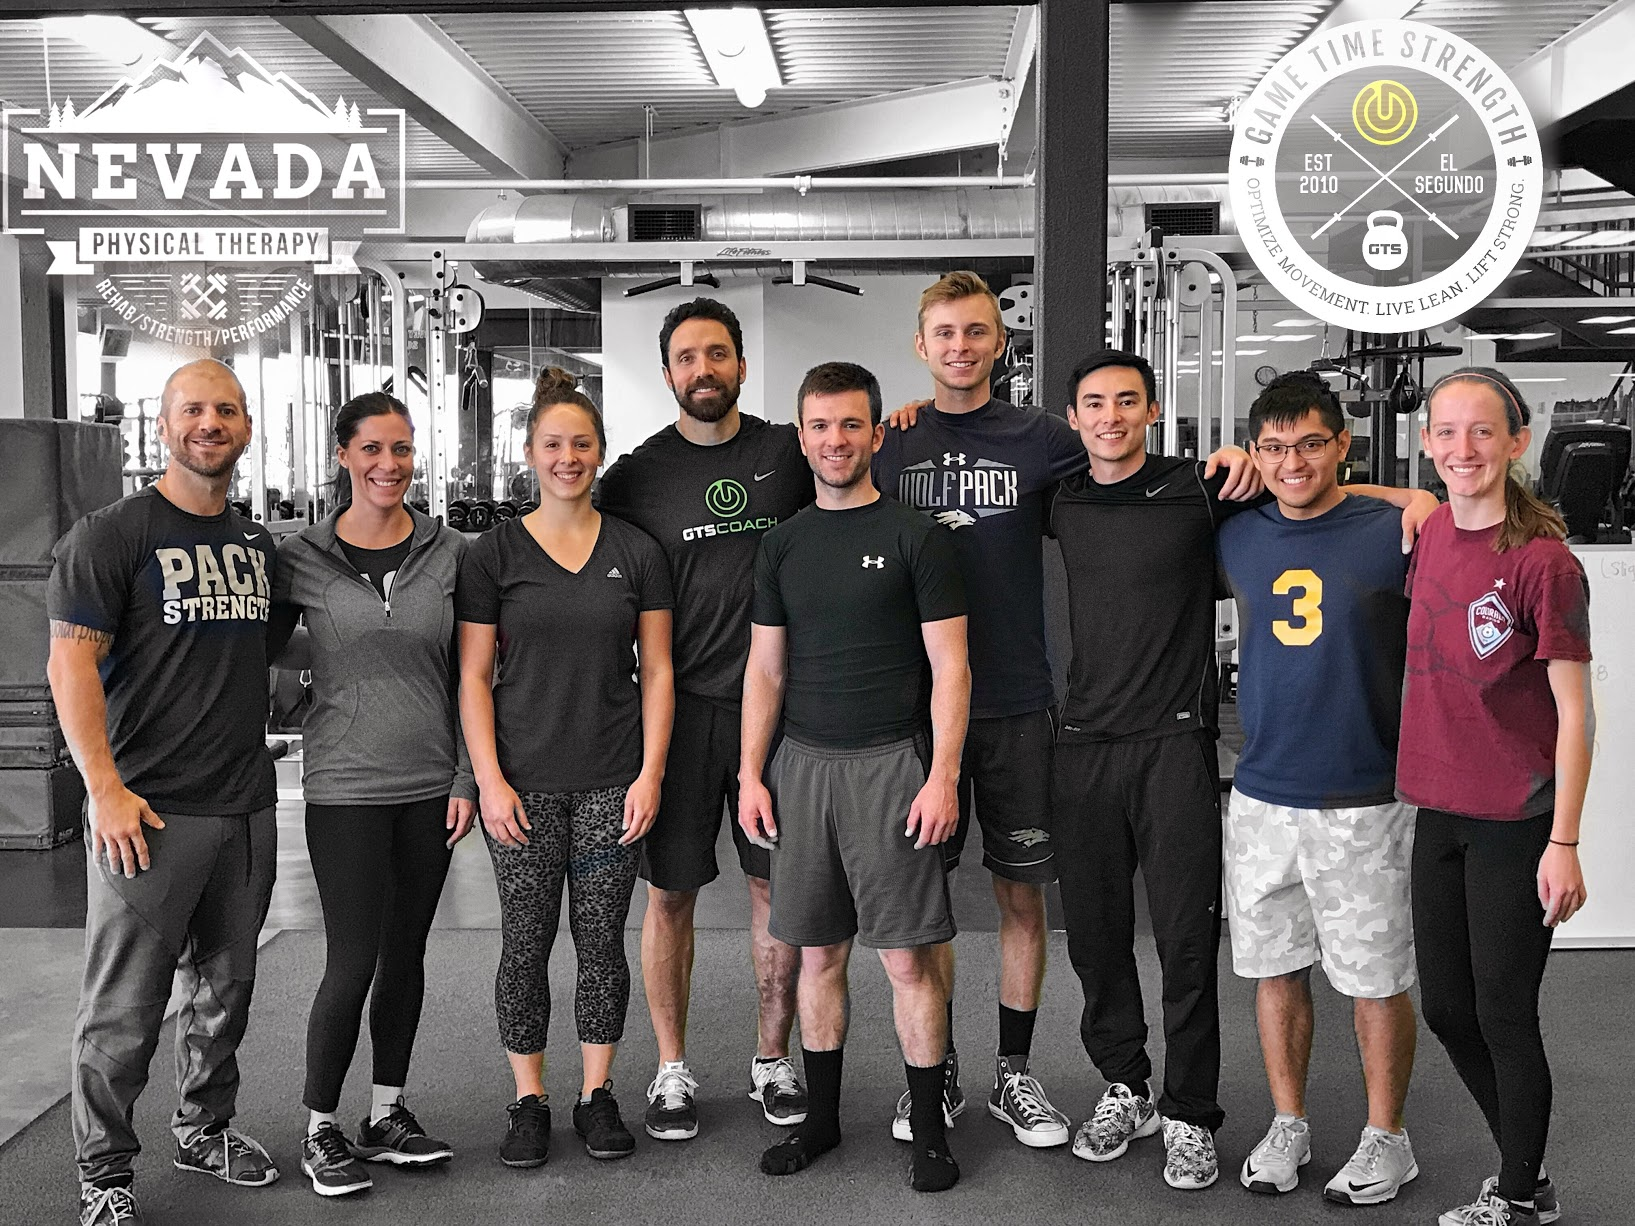 Coach Jason Kelske in Reno, Nevada teaching the Barbell Strength Coaching Workshop with the Nevada Physical Therapy Staff!